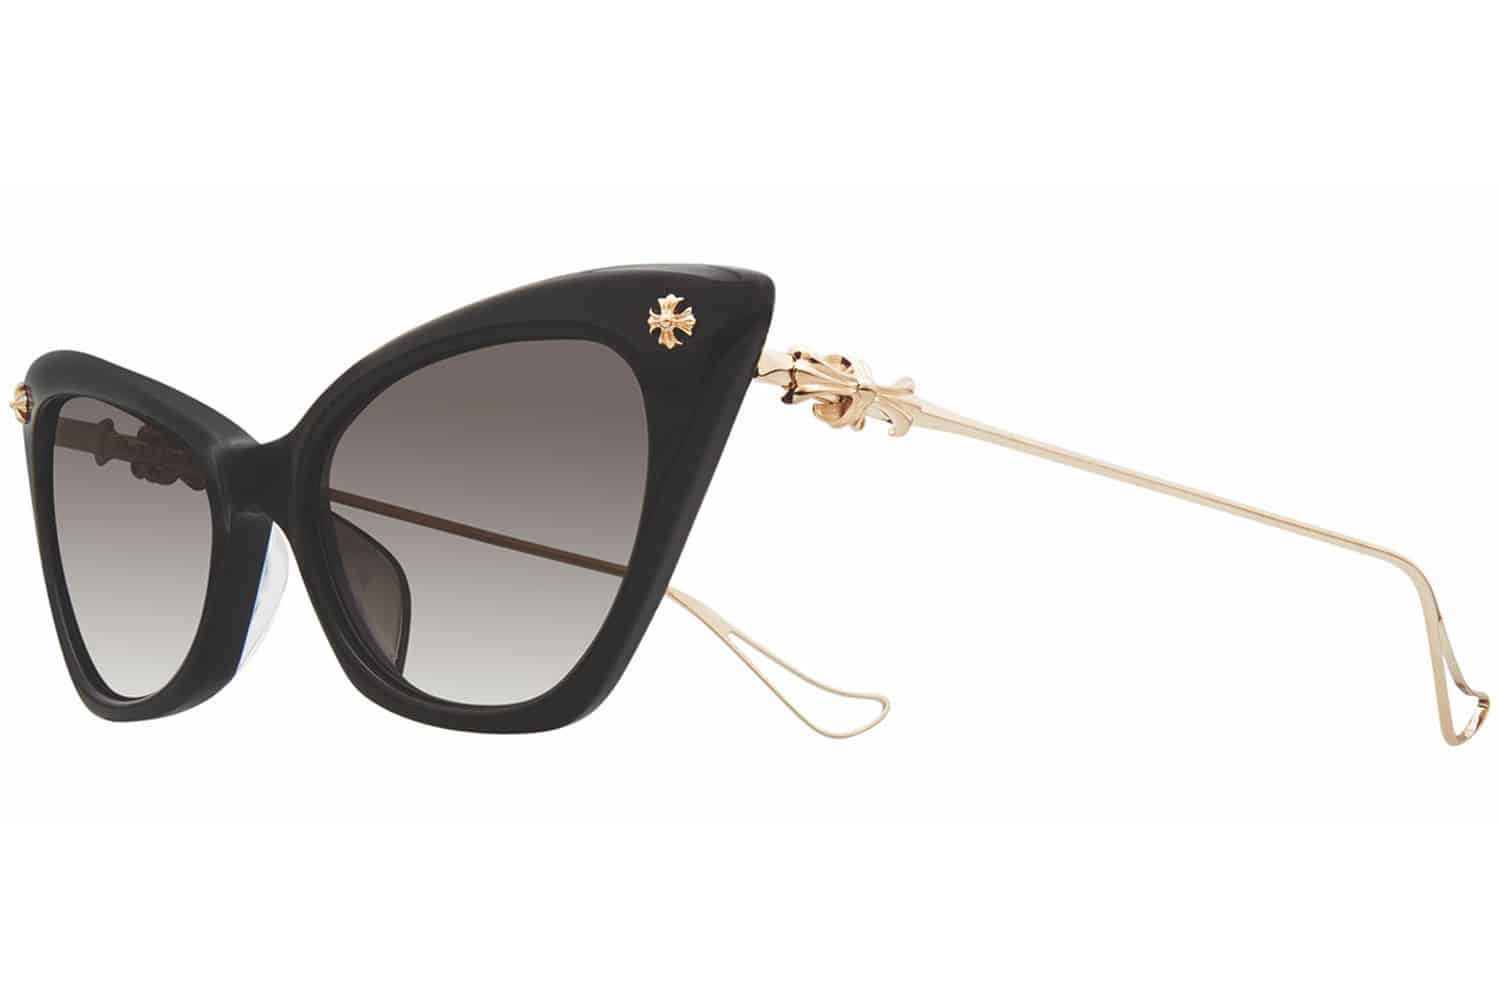 91d53fac929f Editor s Pick  Chrome Hearts  Bailey Girl Cat-Eye Sunglasses